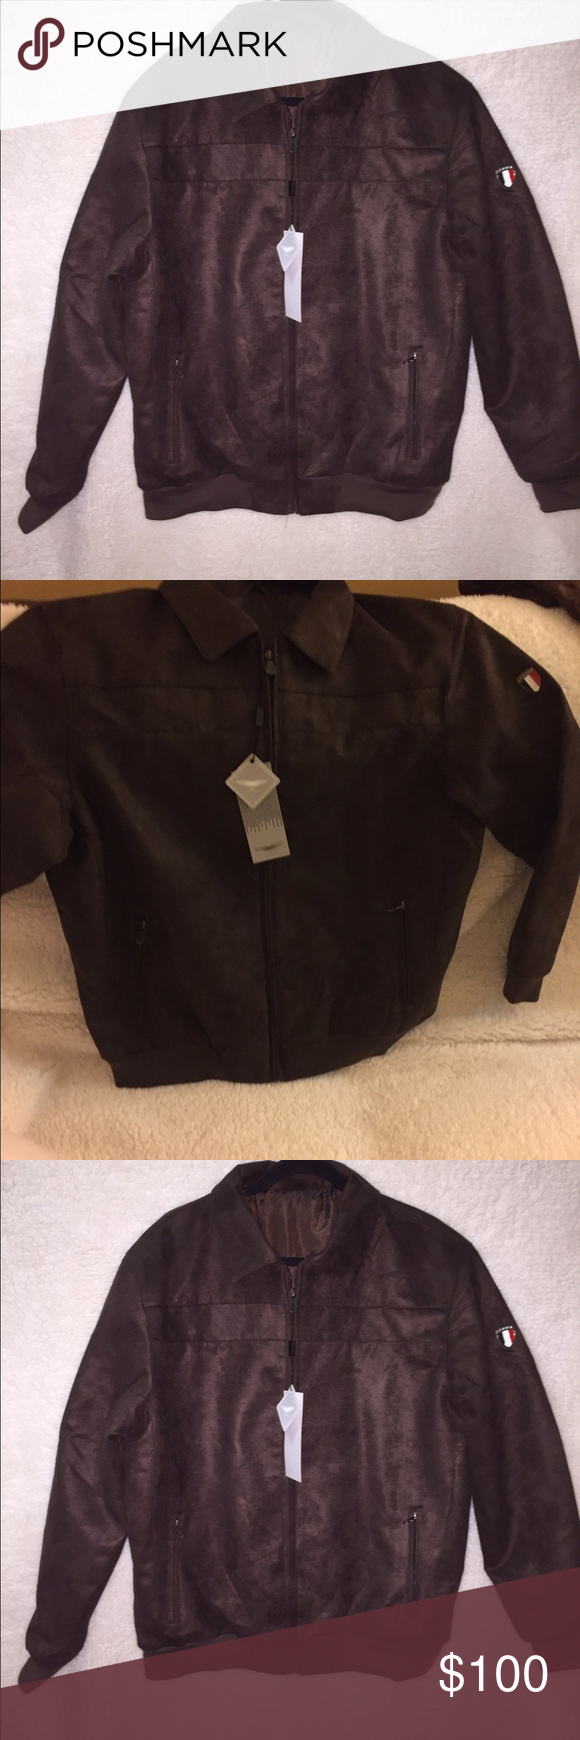 Ac Luxury Collection Jacket Made In Italy Band New Suede Jacket With